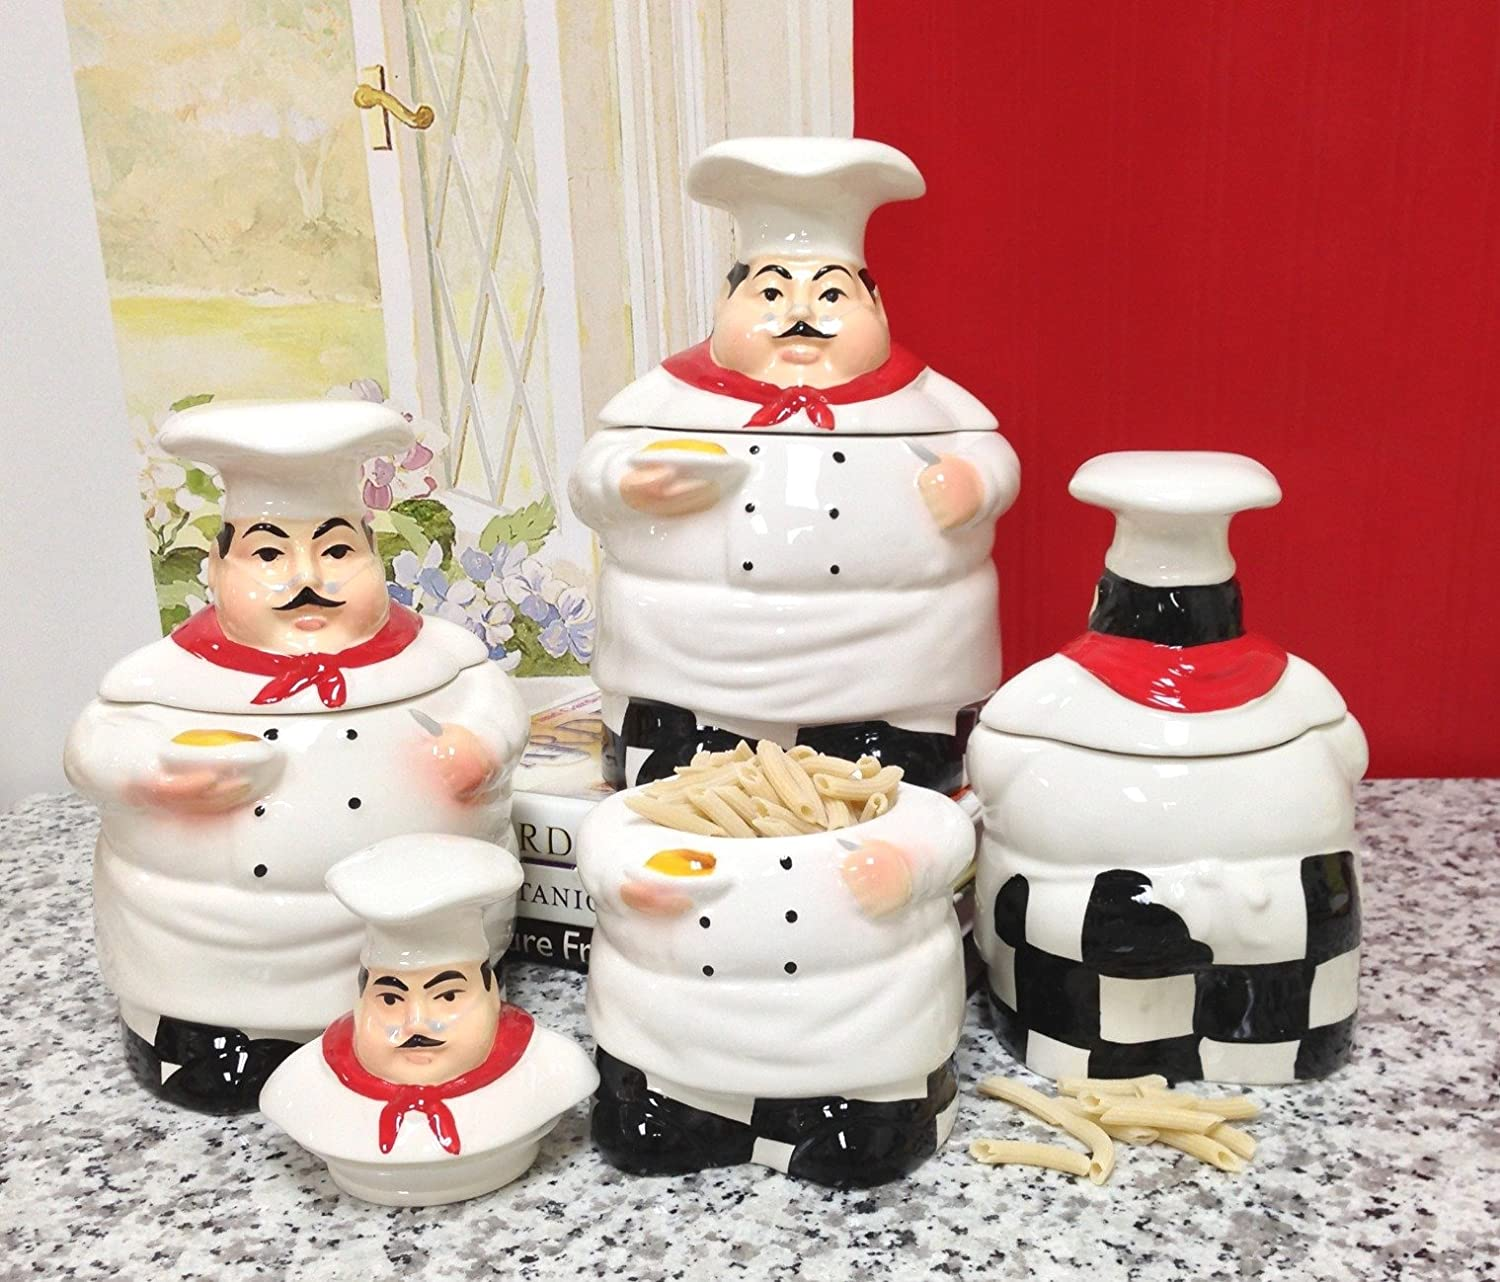 Amazon Bistro Fat Chef Canister Set Ceramic Kitchen Decor